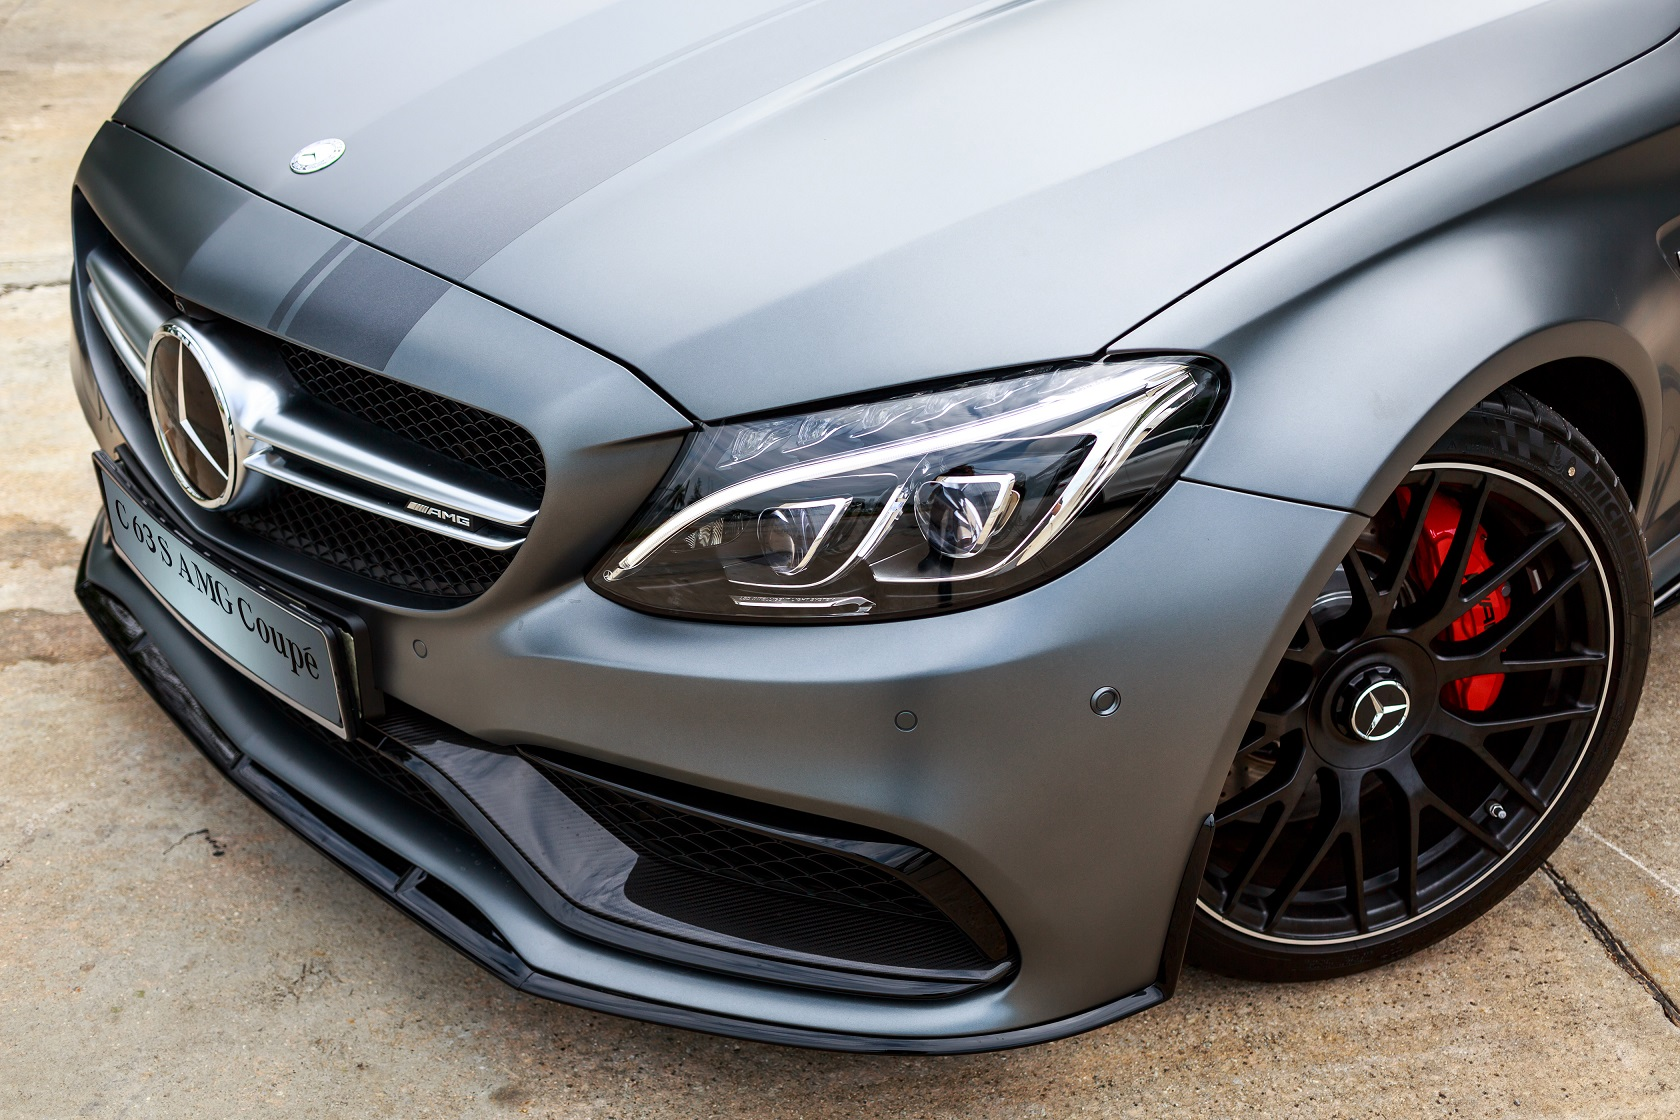 mercedes-amg-c-63-s-coupe-edition-1-10